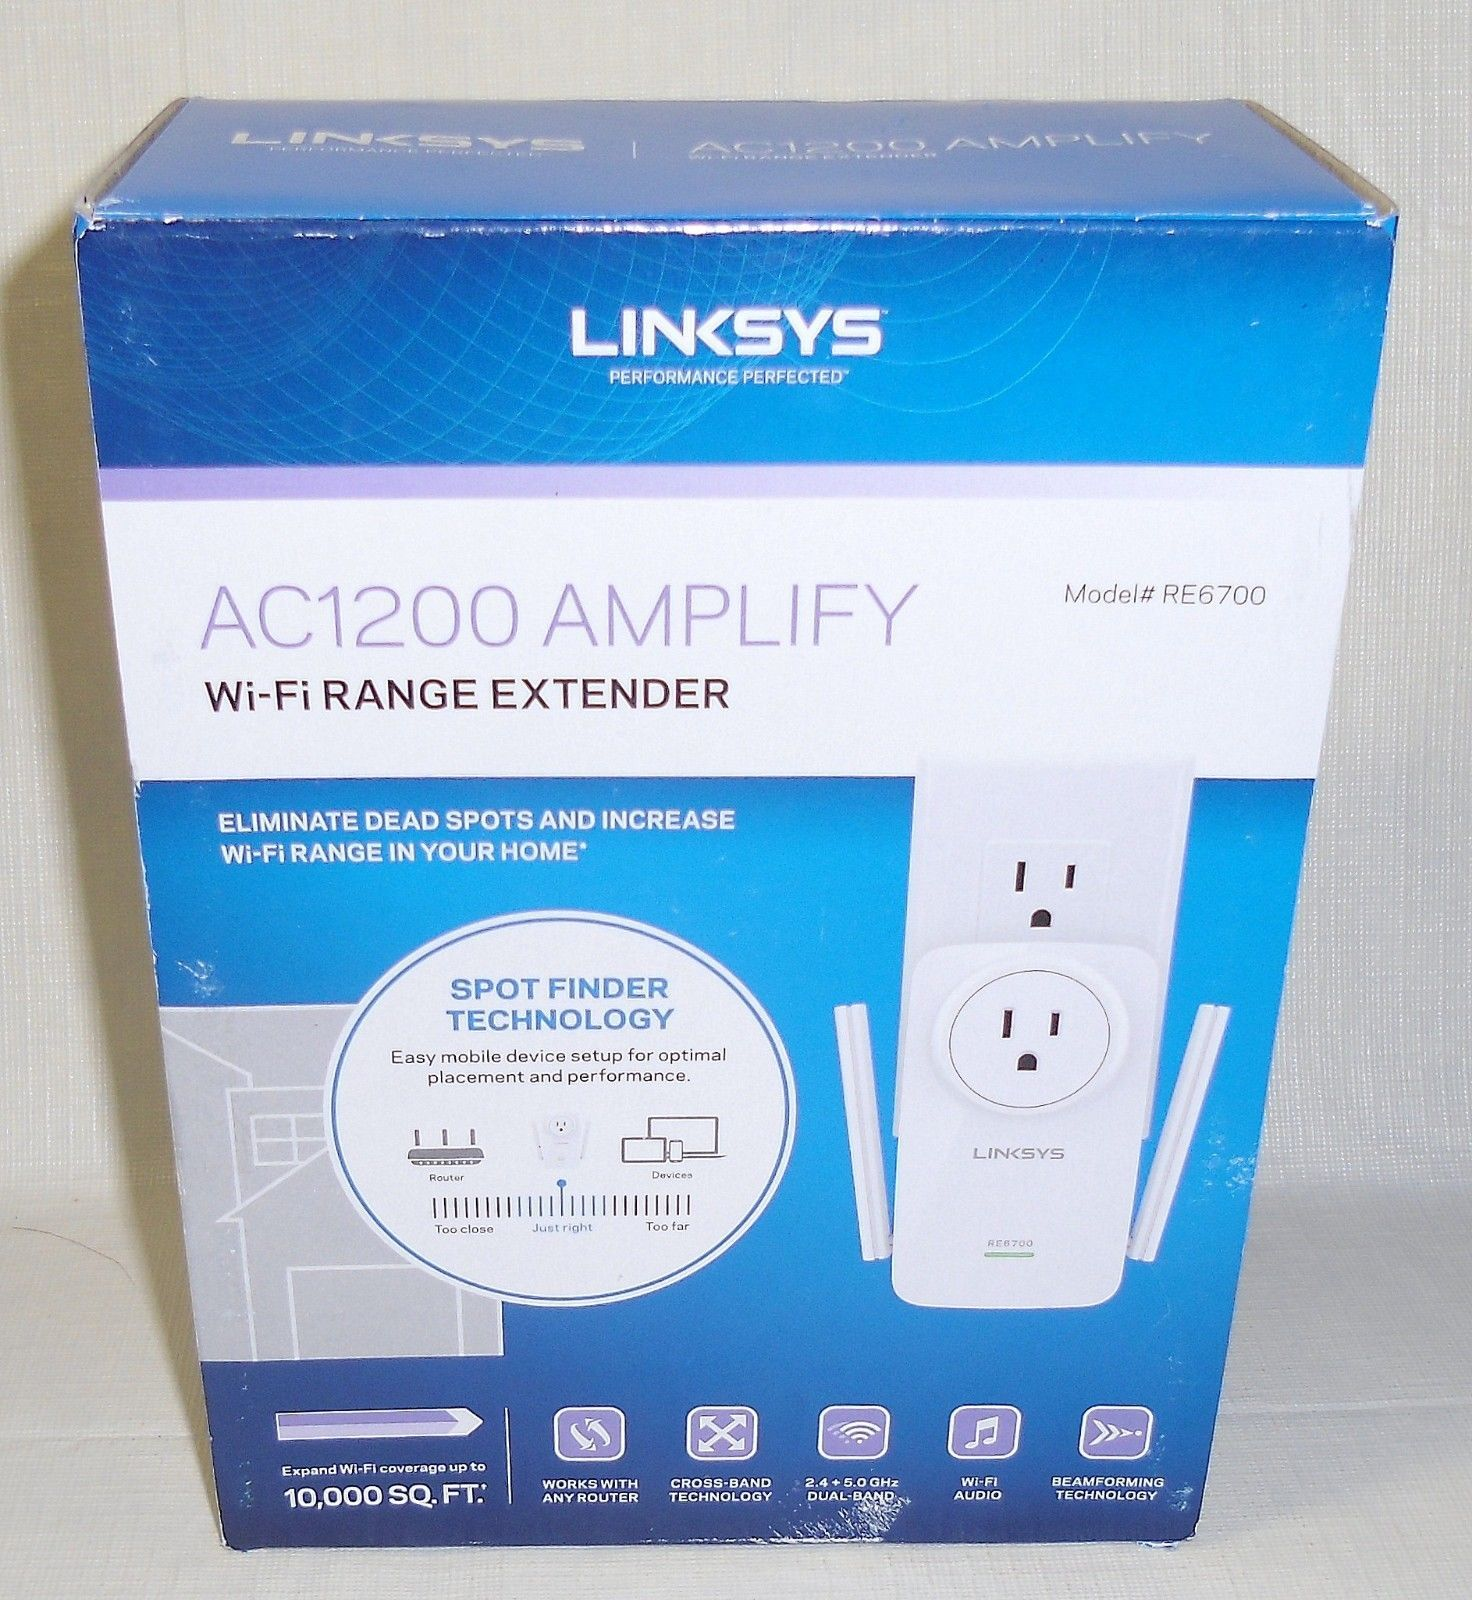 New linksys ac1200 re6700 amplify dual band high power wi fi range new linksys ac1200 re6700 amplify dual band high power wi fi range extender fandeluxe Images